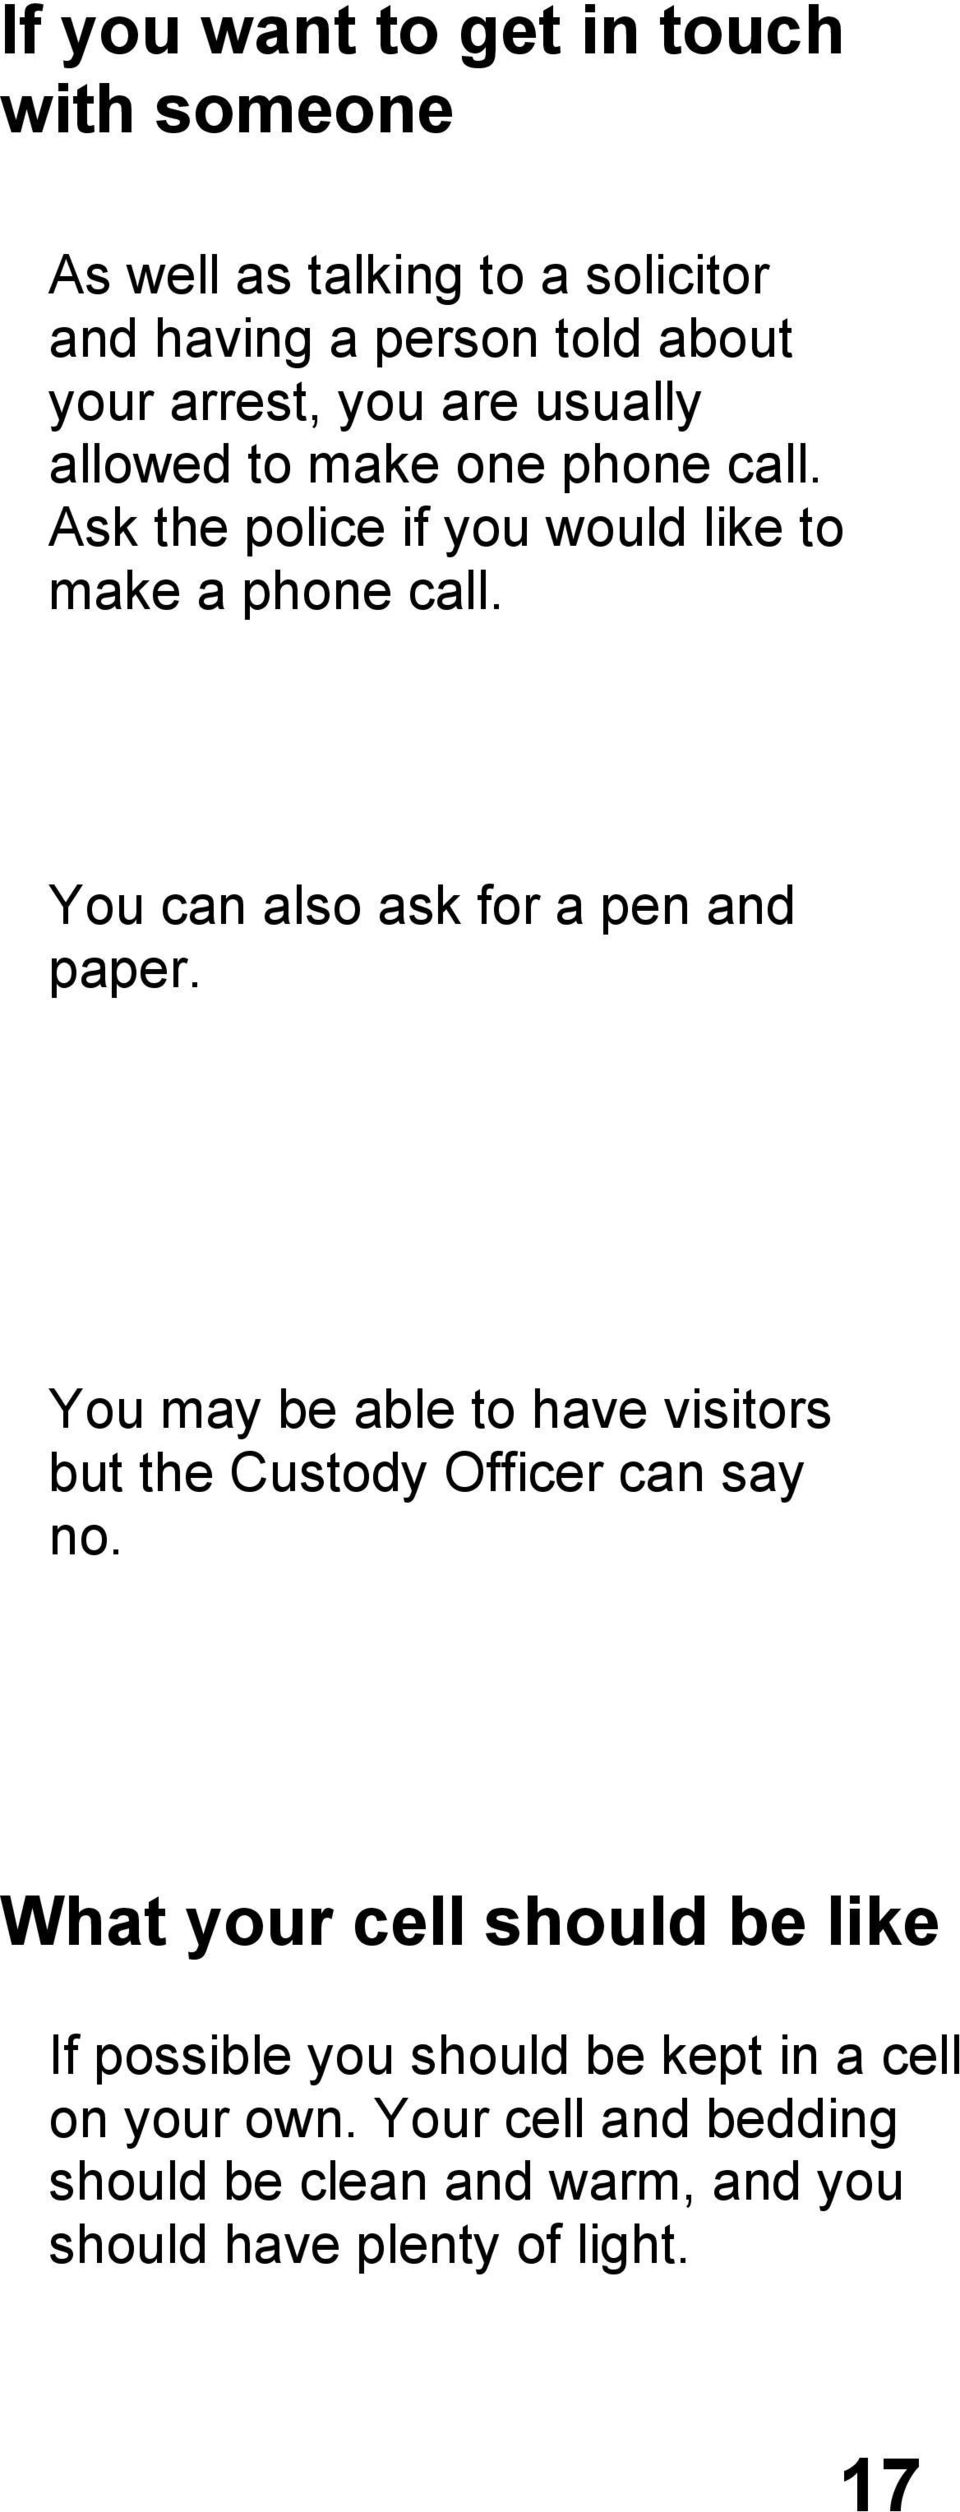 You can also ask for a pen and paper. You may be able to have visitors but the Custody Officer can say no.